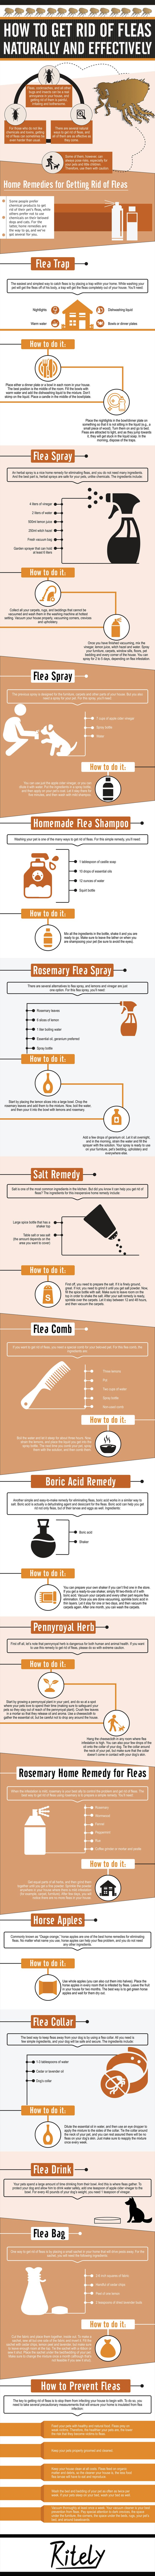 How to Get Rid of Fleas Naturally and Effectively